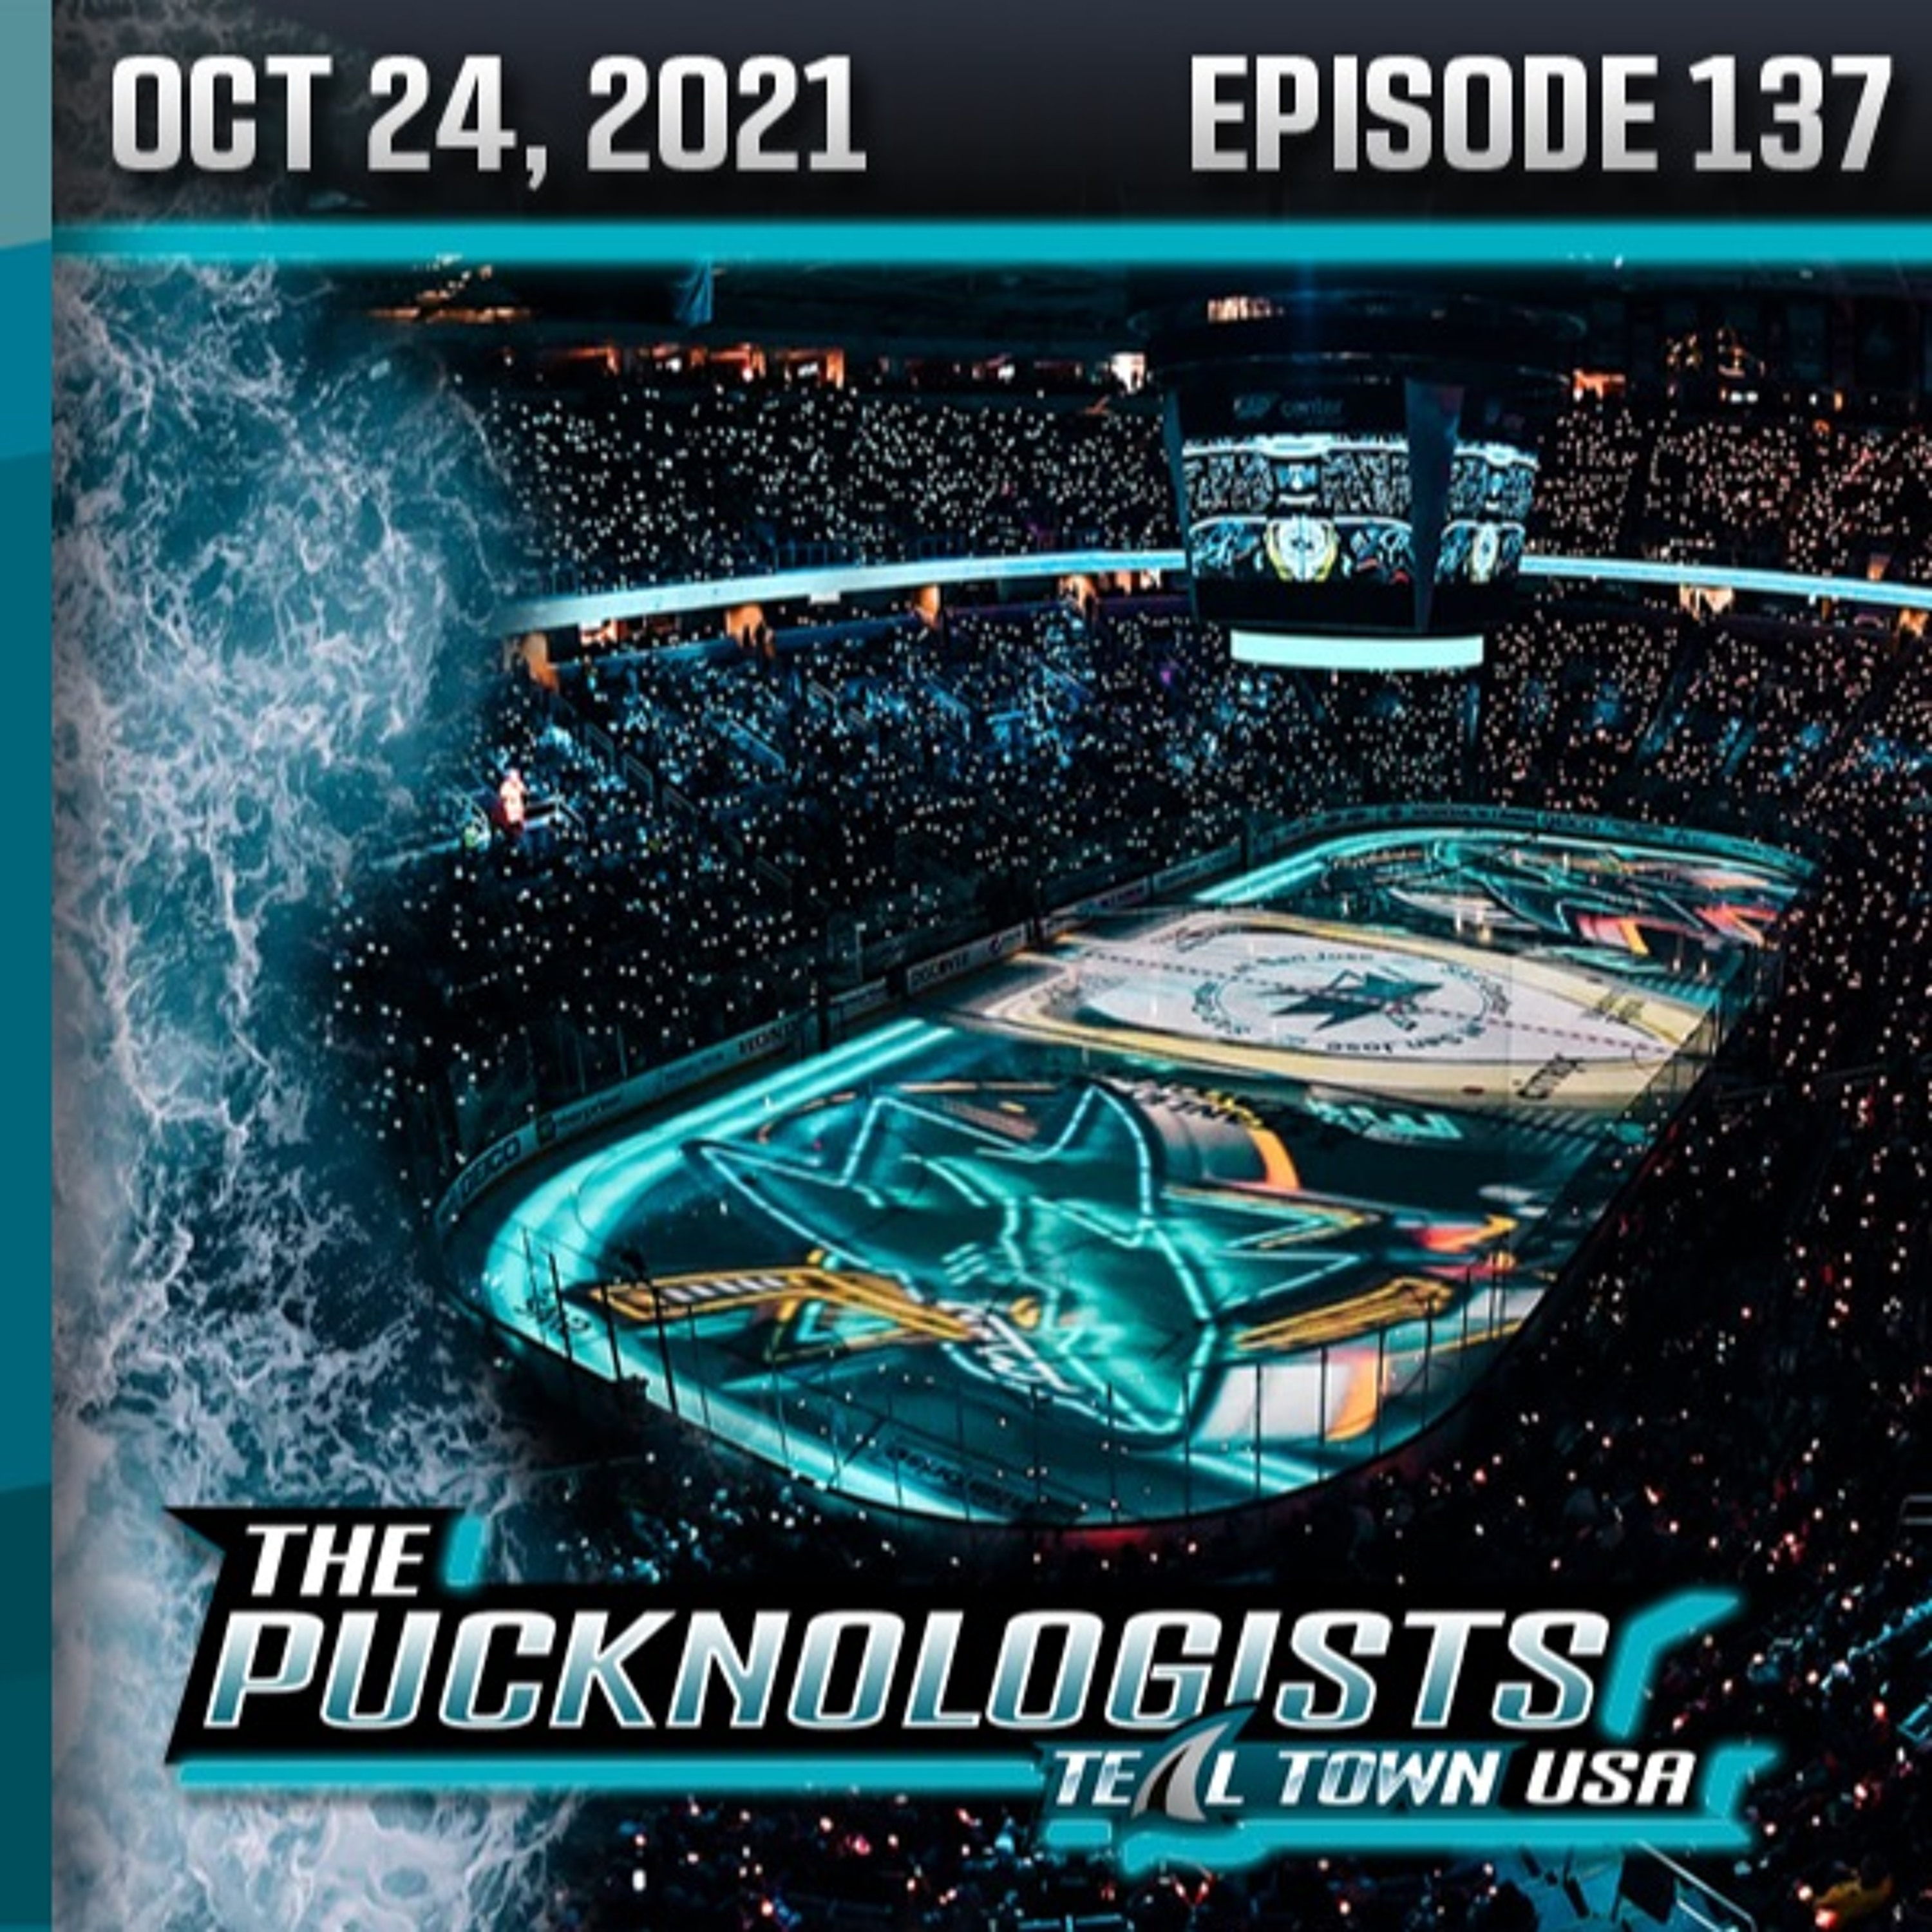 Sharks Go 4-1, Opening Night Notes, Kane Questions - The Pucknologists 137